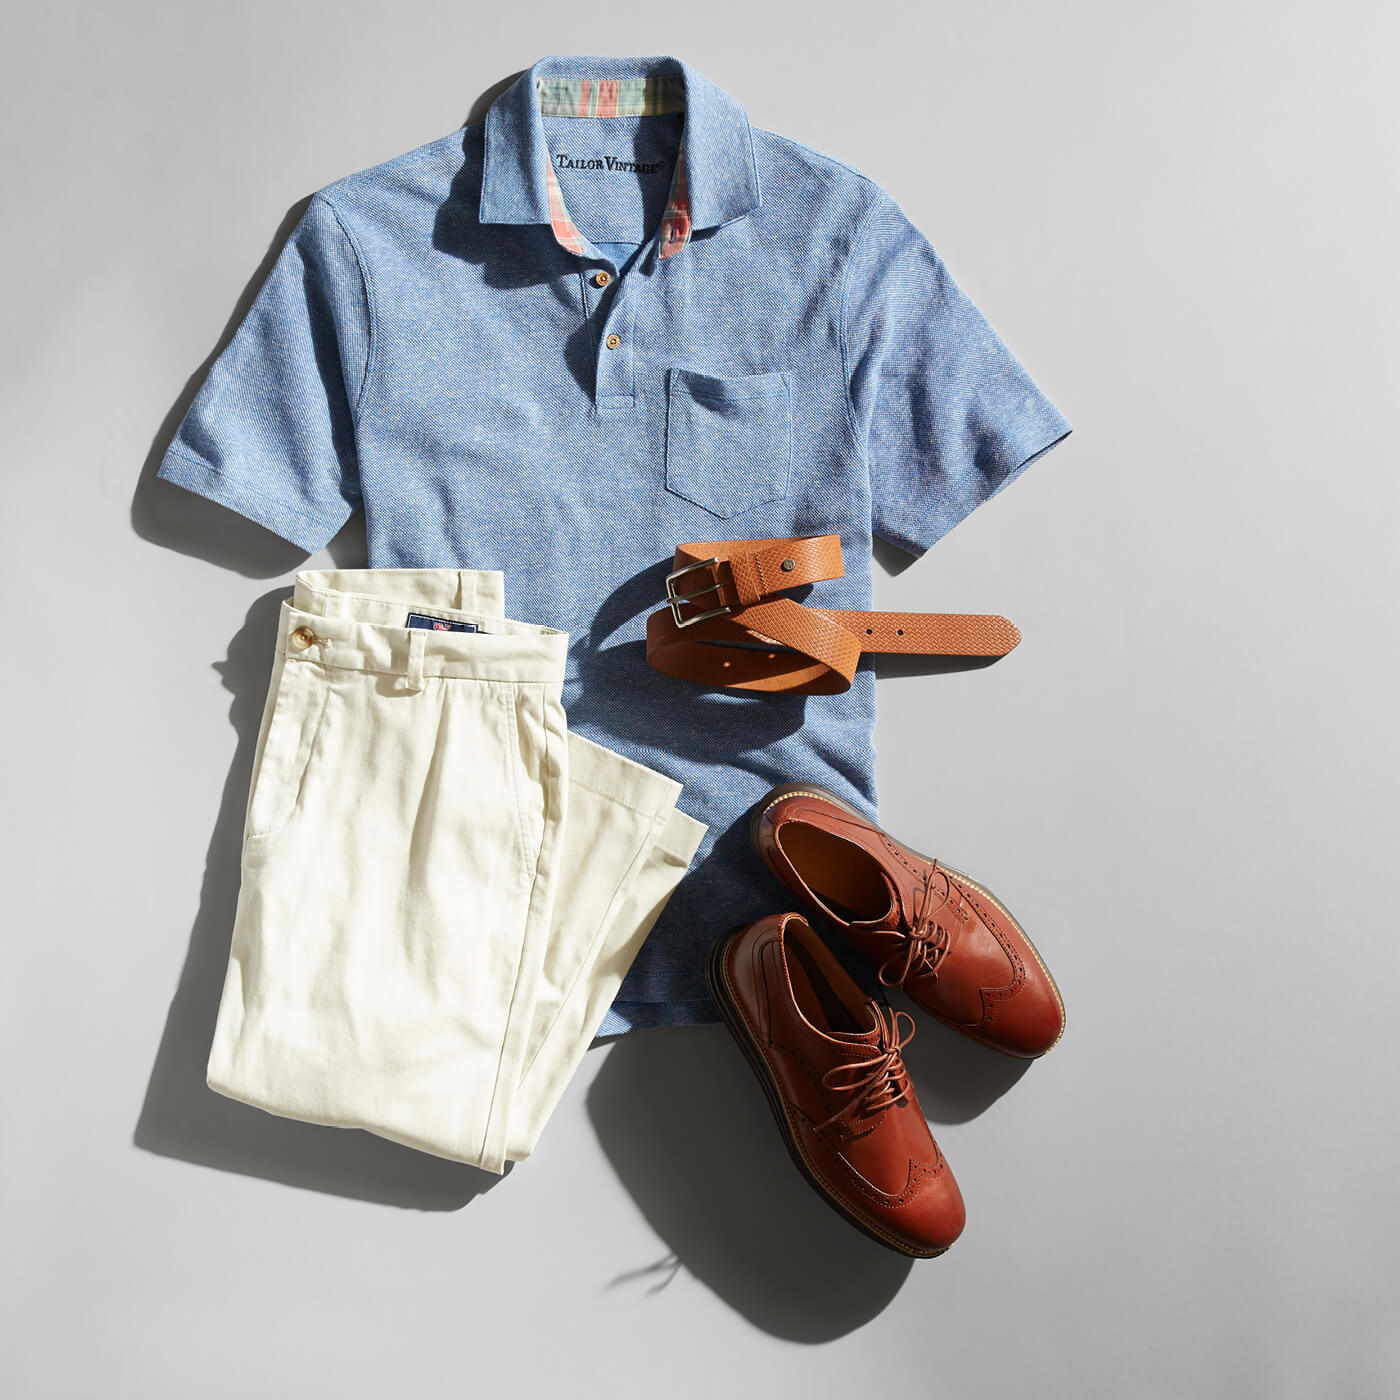 a1064f9703d How to Dress for Work in the Summer